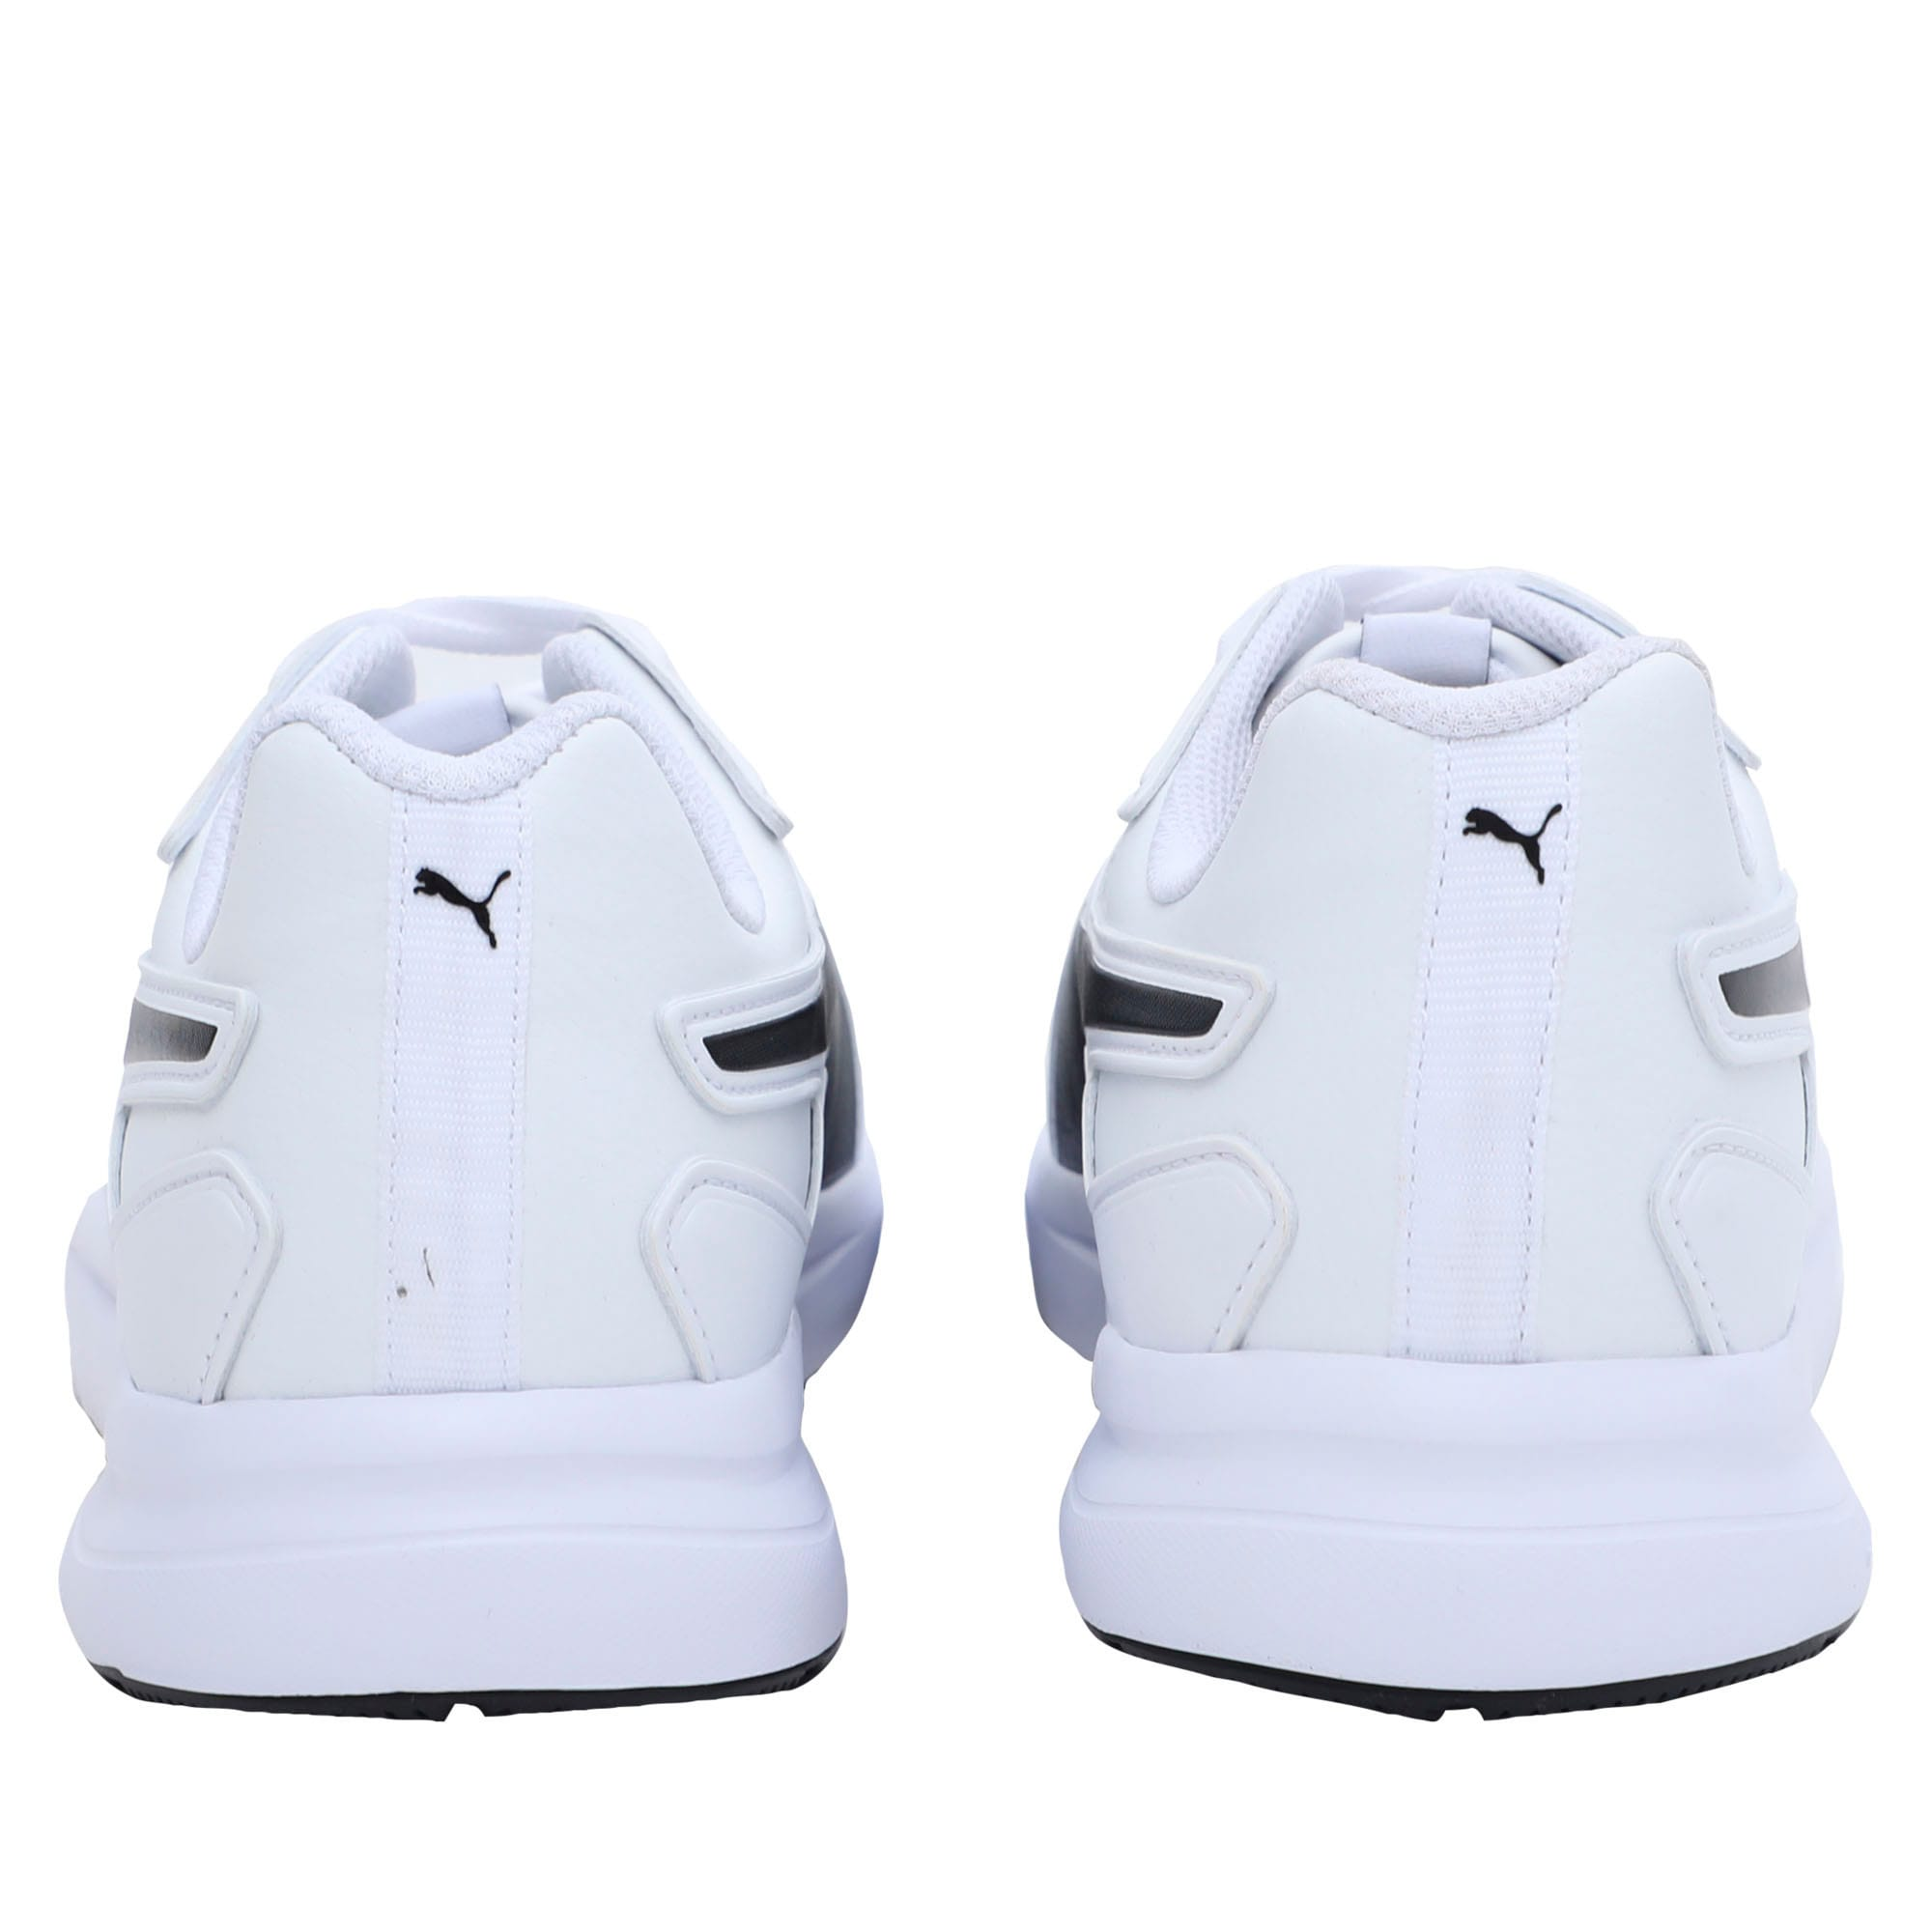 Thumbnail 4 of Escaper SL Trainers, Puma White-Puma Black, medium-IND